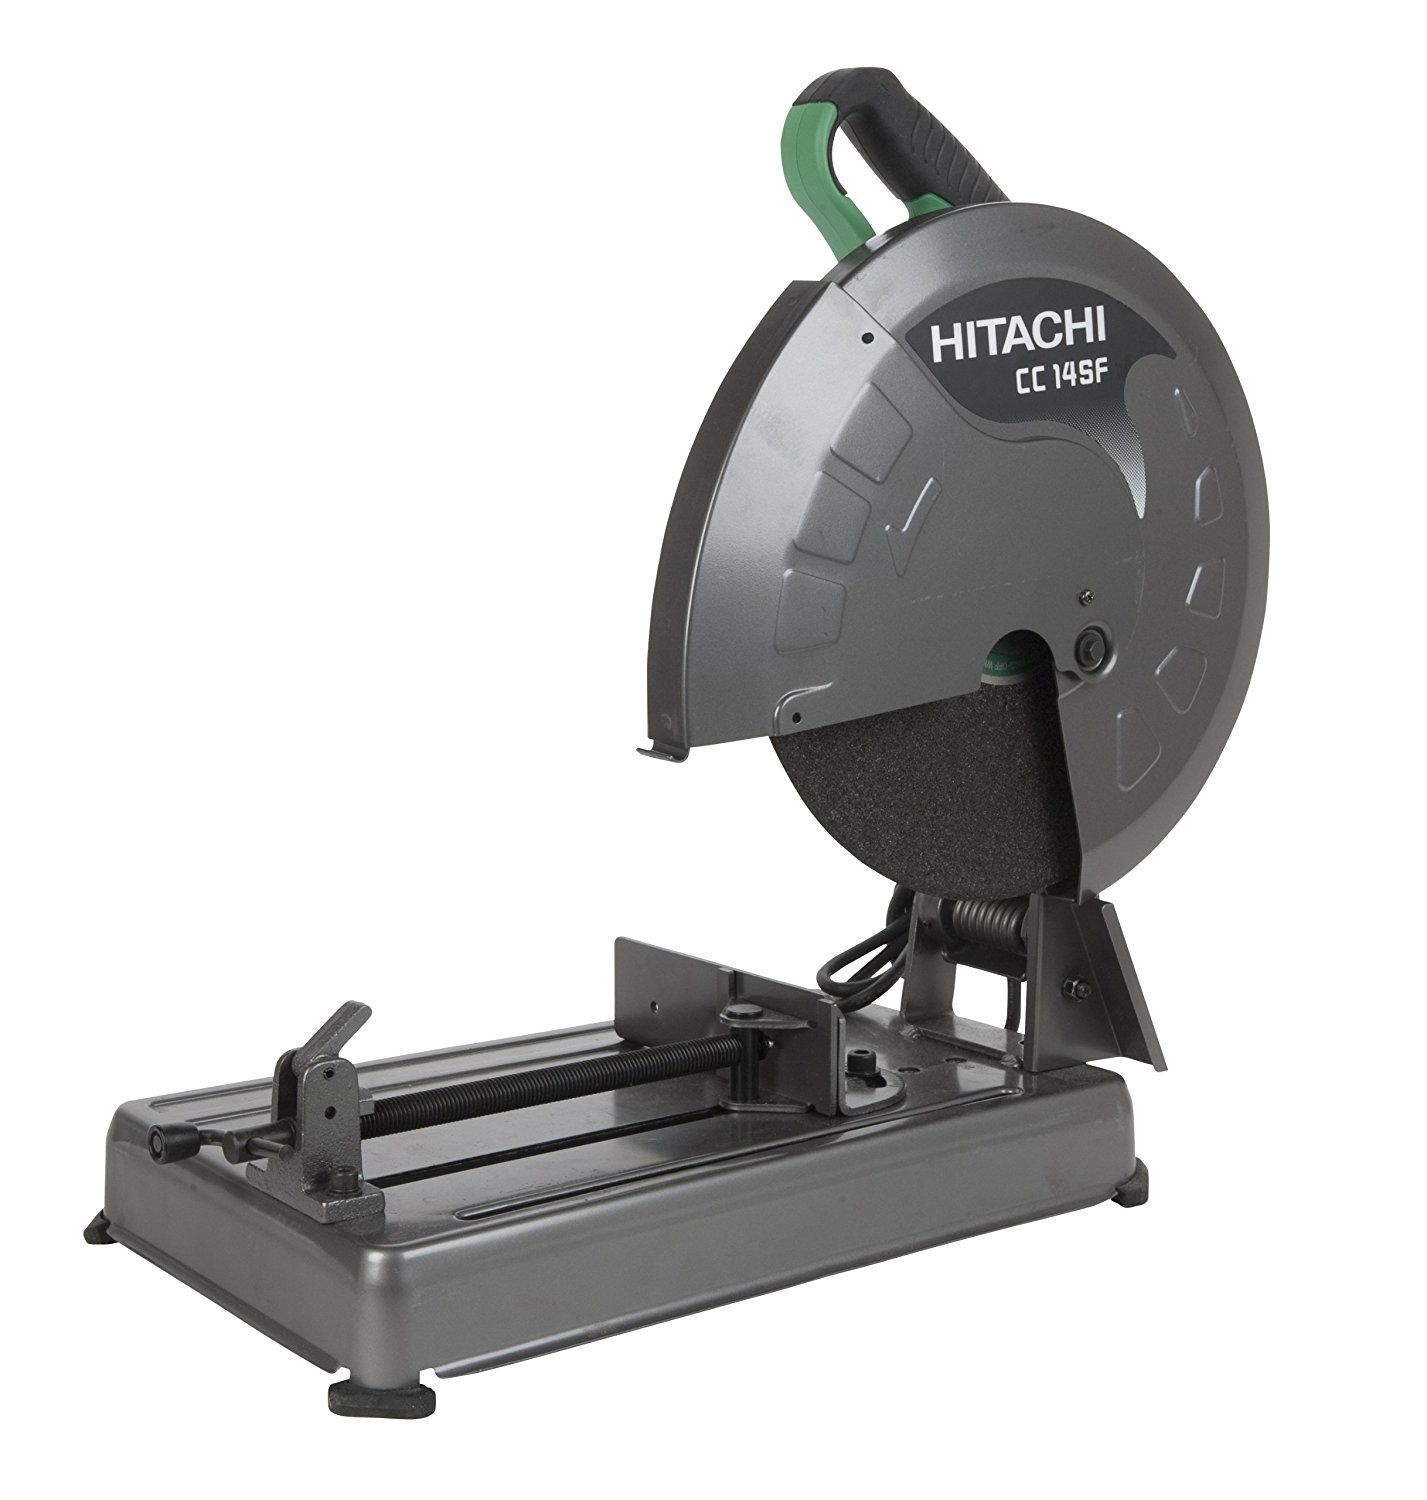 Hitachi Cc14sfs 14 Inch 15 Amp Portable Chop Saw With Trigger Switch 4000 Rpm Check Out This Great Product Chop Saw Metal Chop Saw Angle Grinder Stand